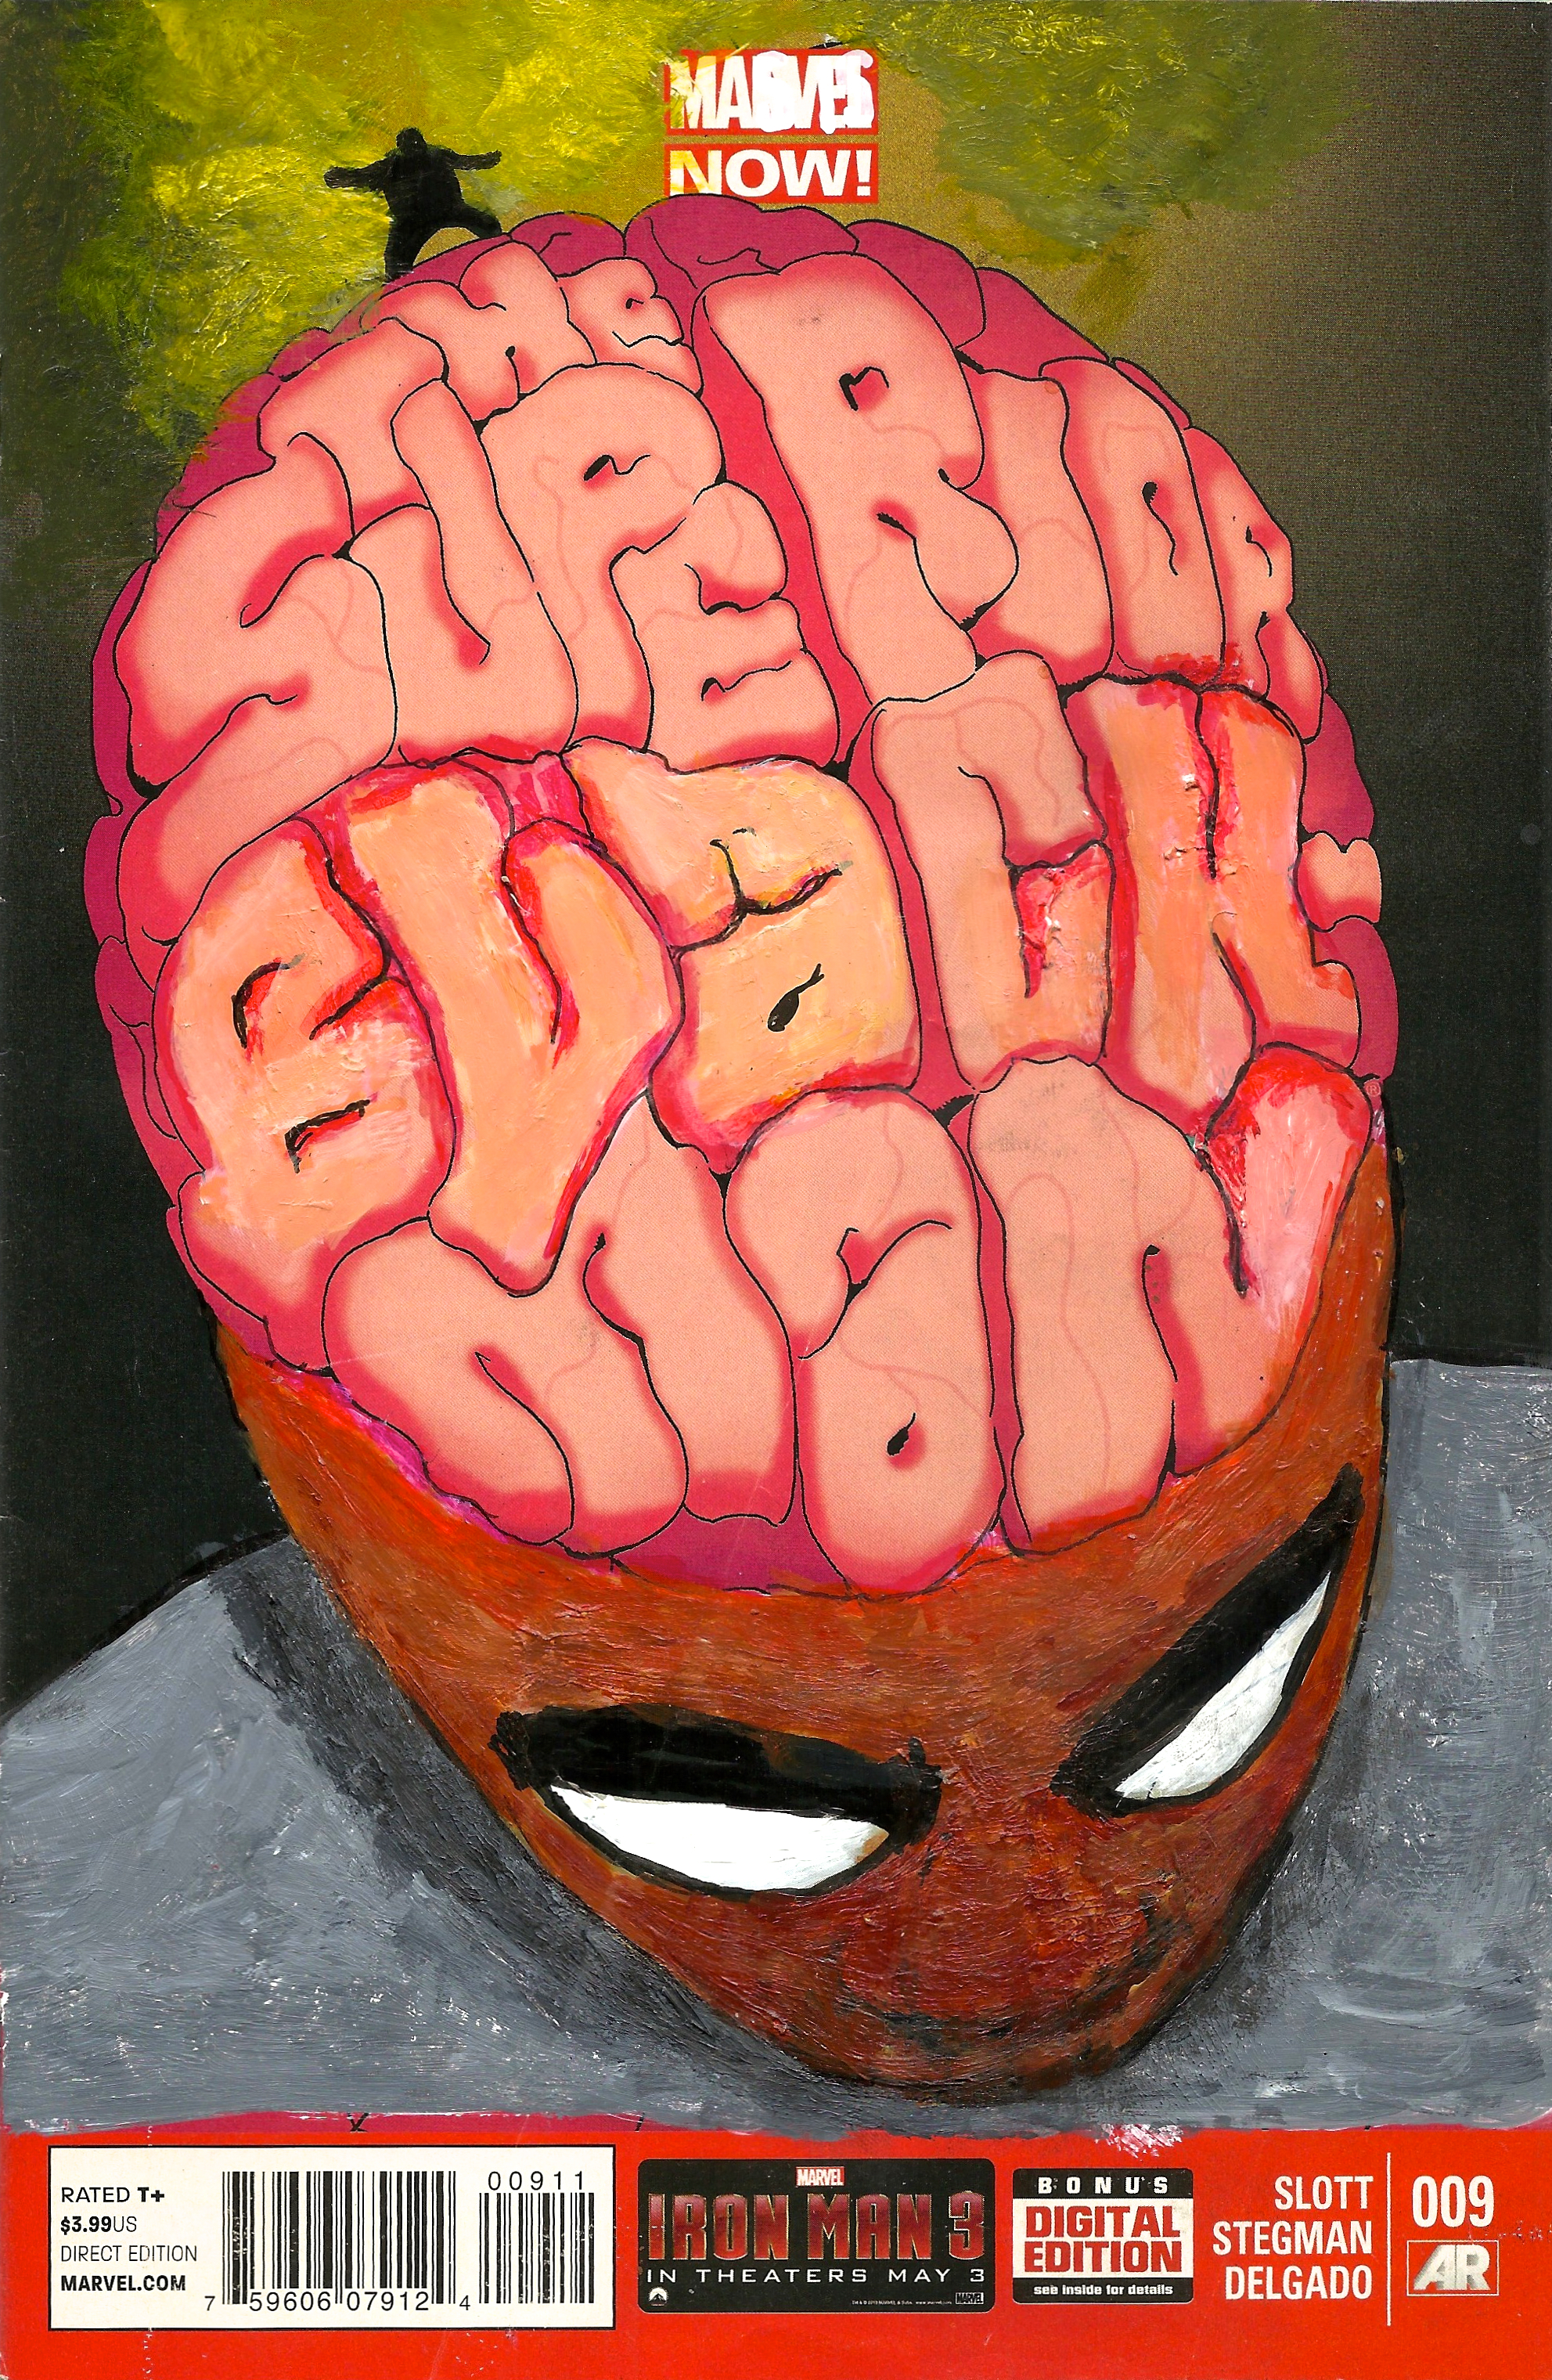 Kumasi J. Barnett Superior Black-Man #9 Acrylic, marker, pen and oil marker on comic book 9 3/4h x 6 1/4w inches KB-101